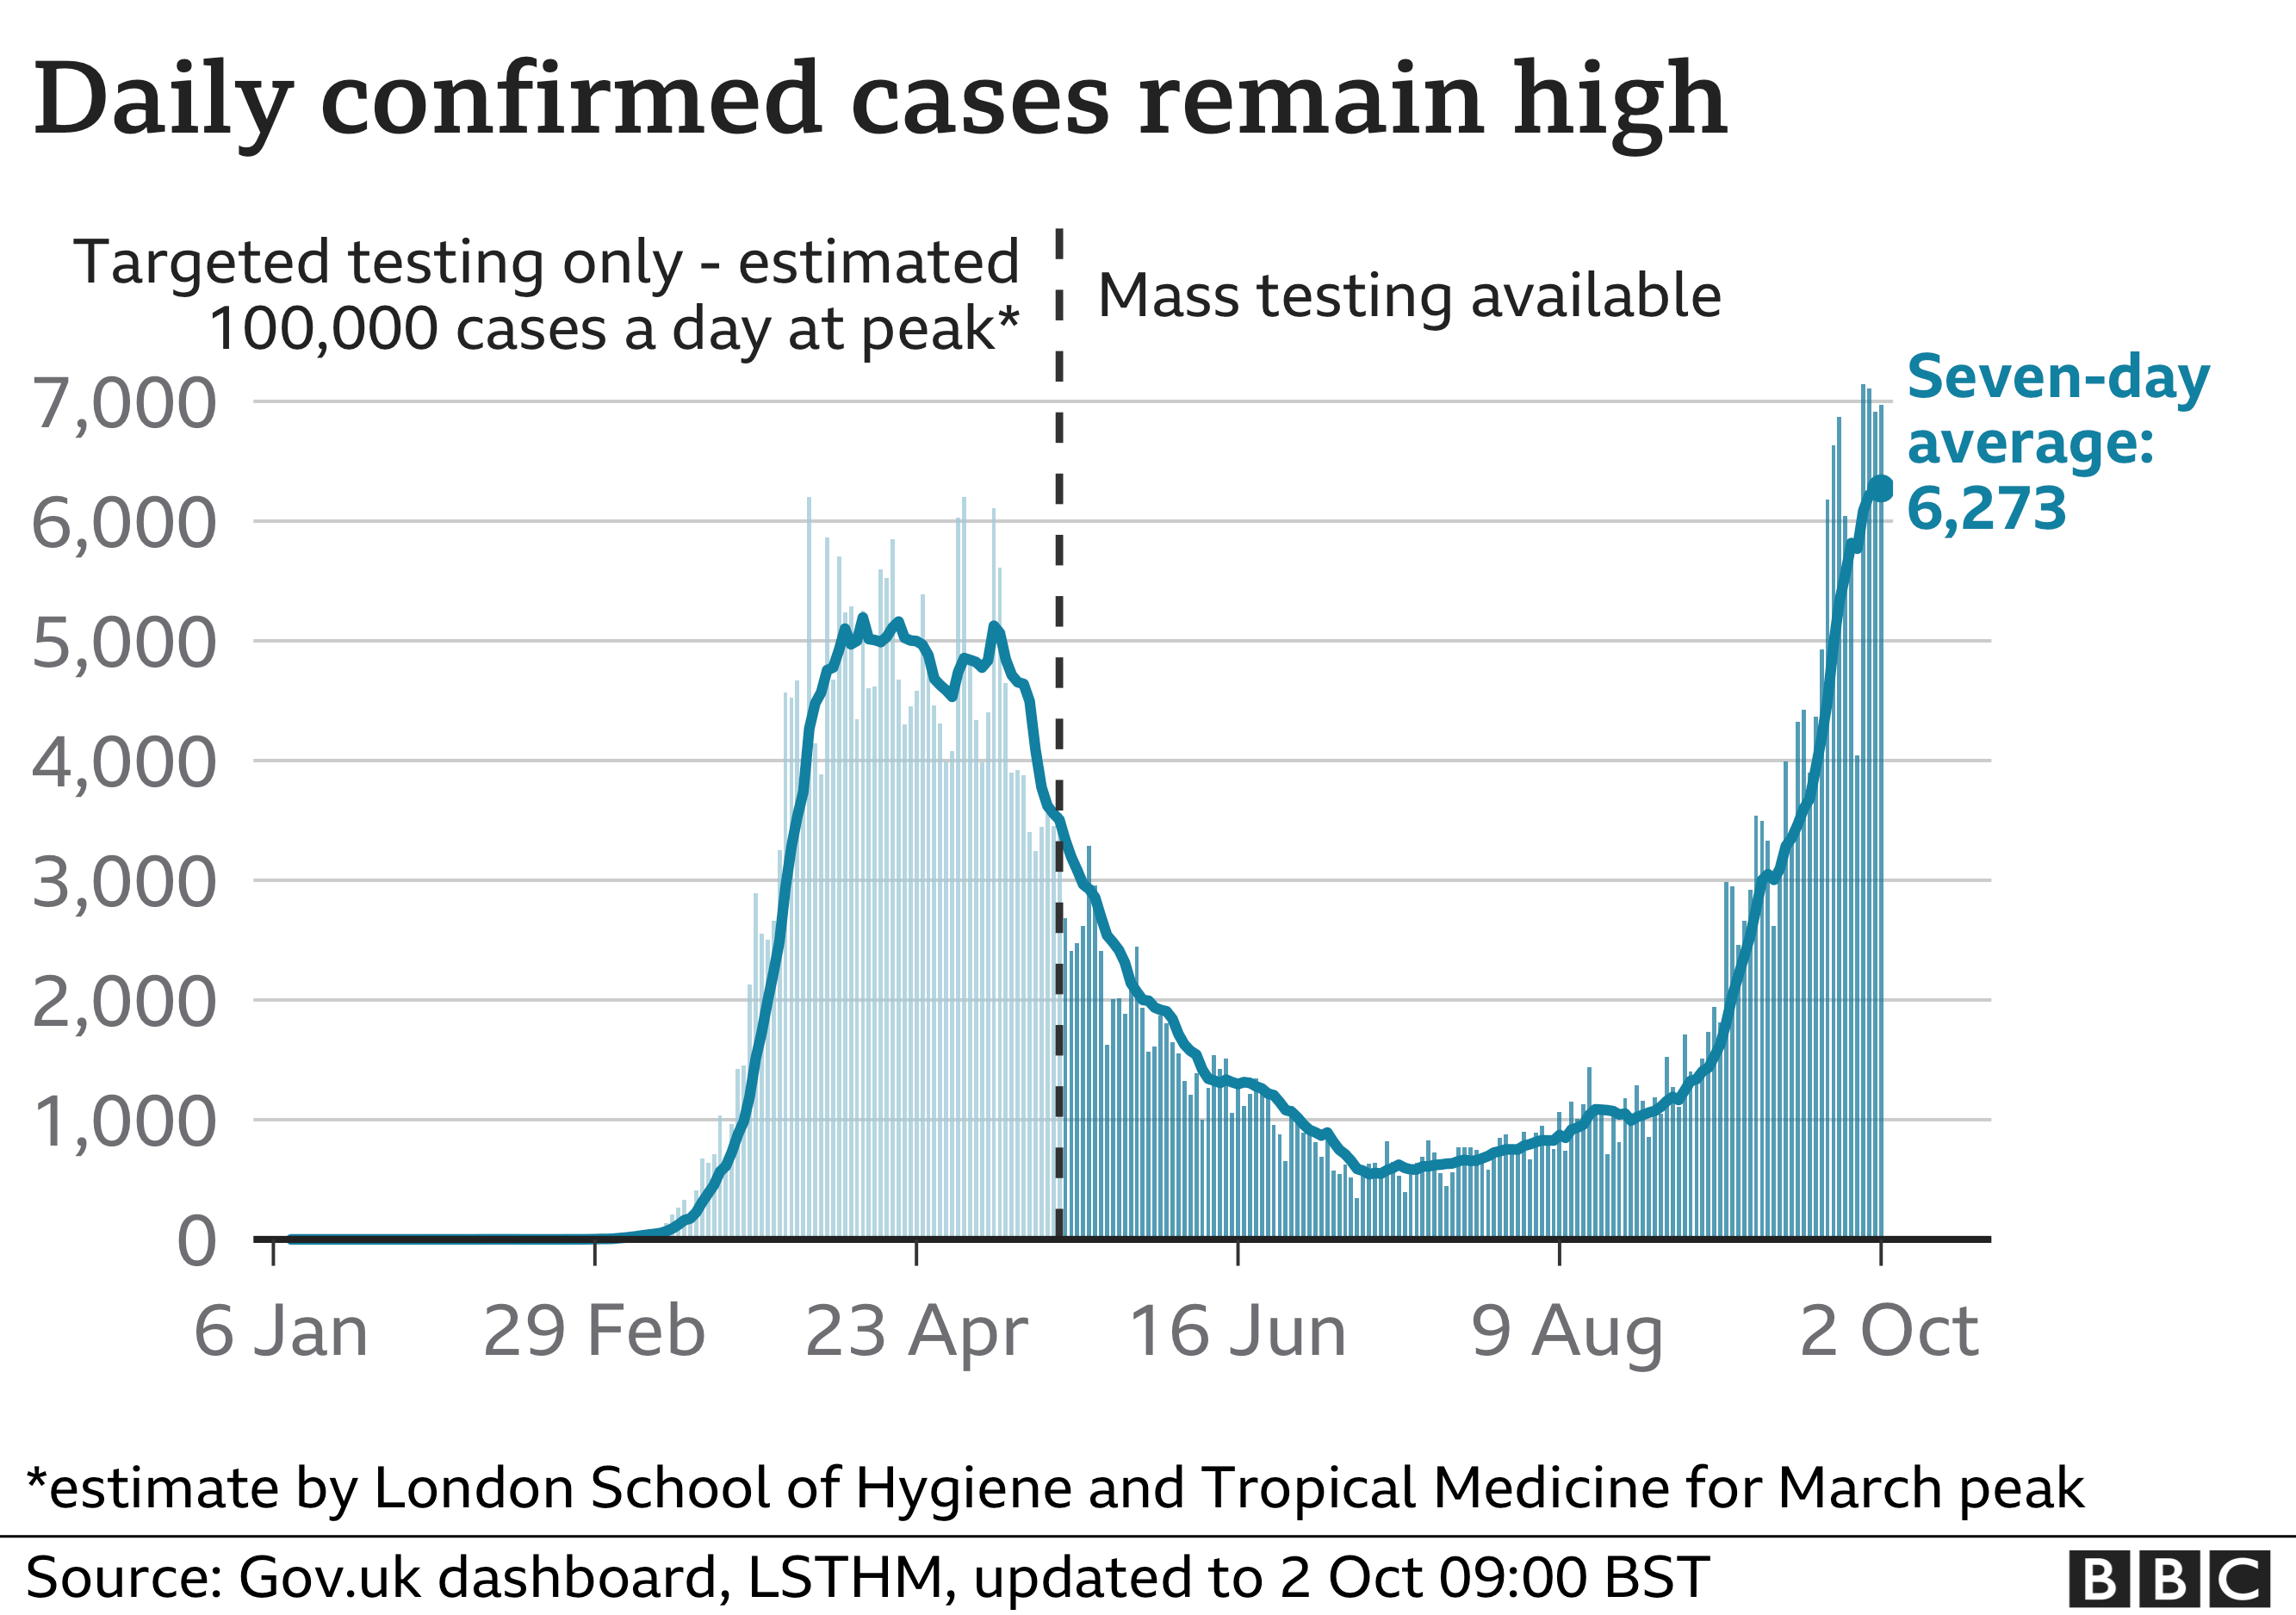 Chart showing the number of confirmed cases rising steeply